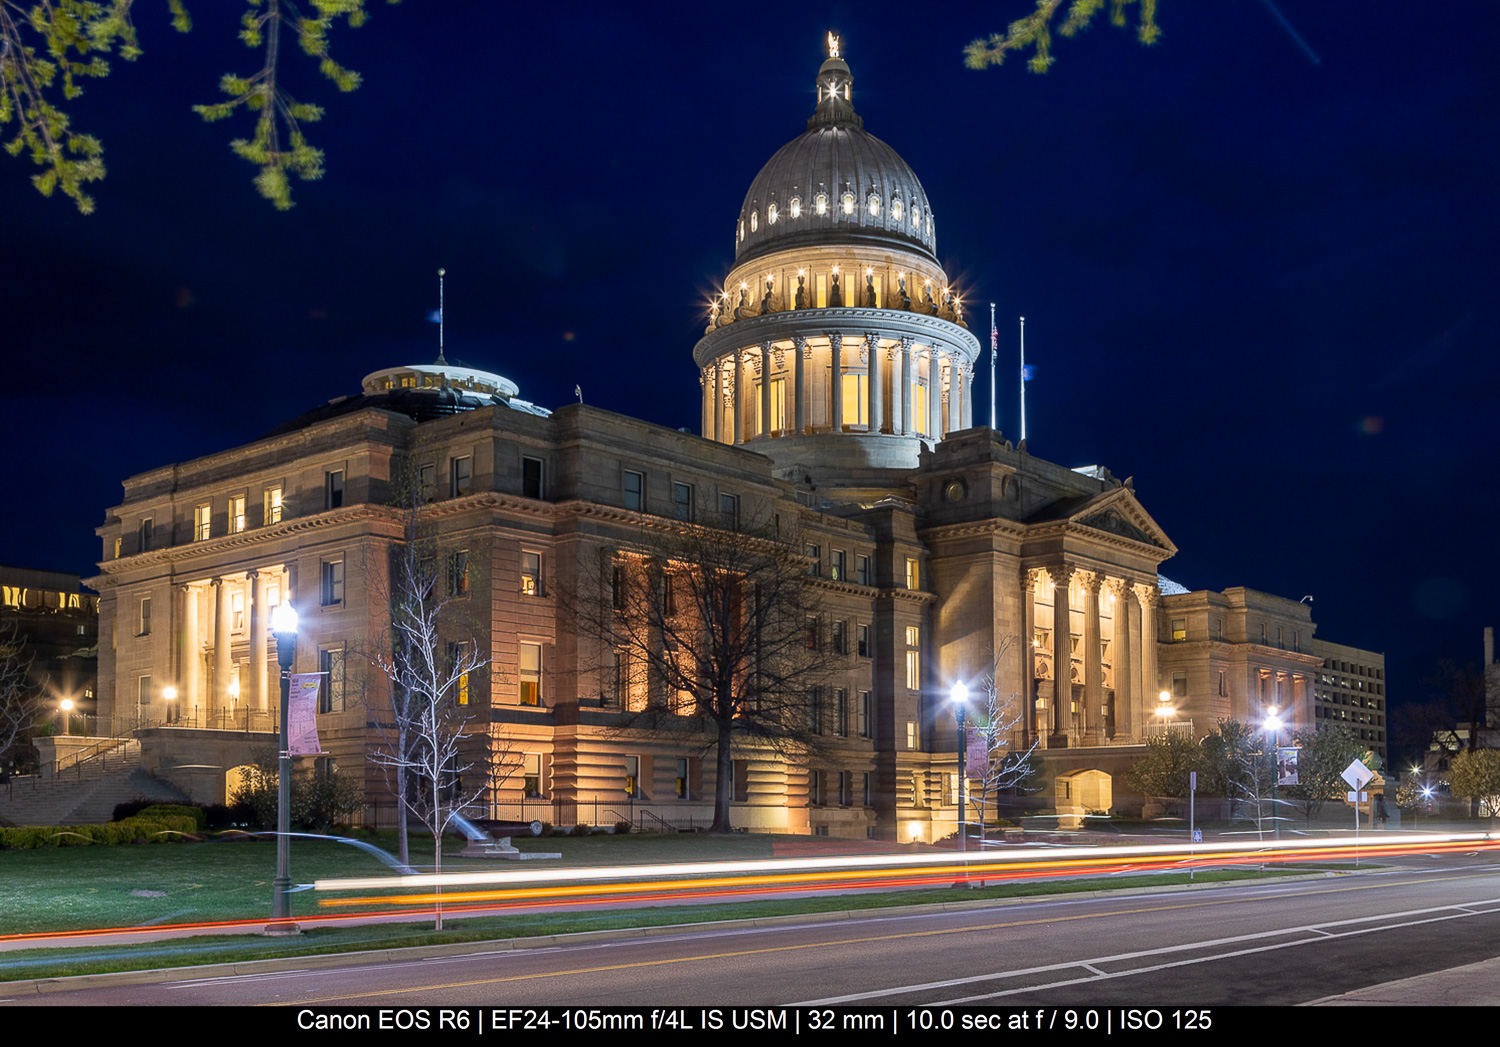 Idaho state capitol building with long exposure light trails